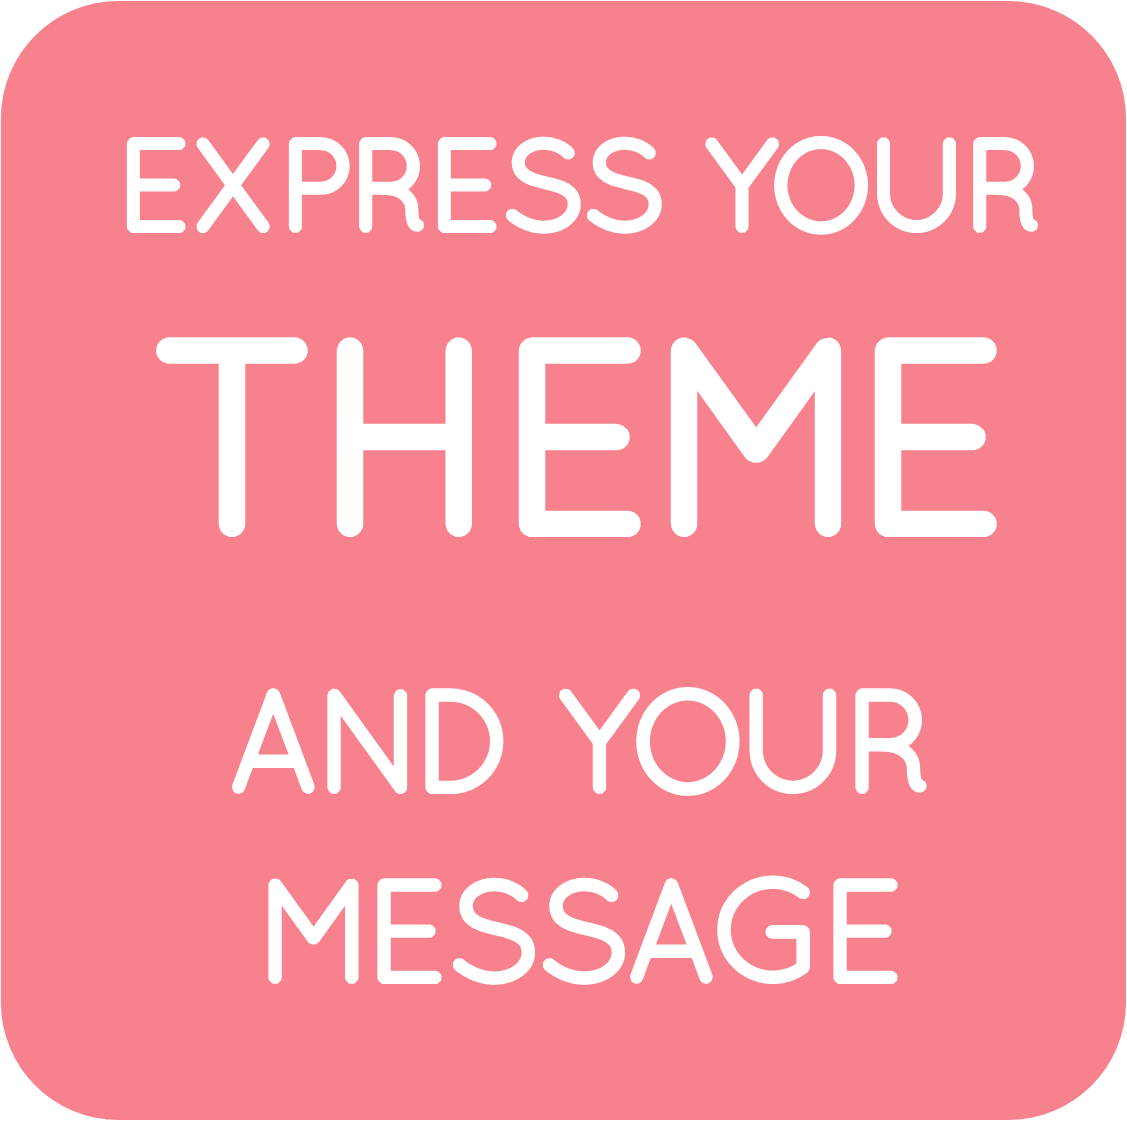 04-express your theme and message.png